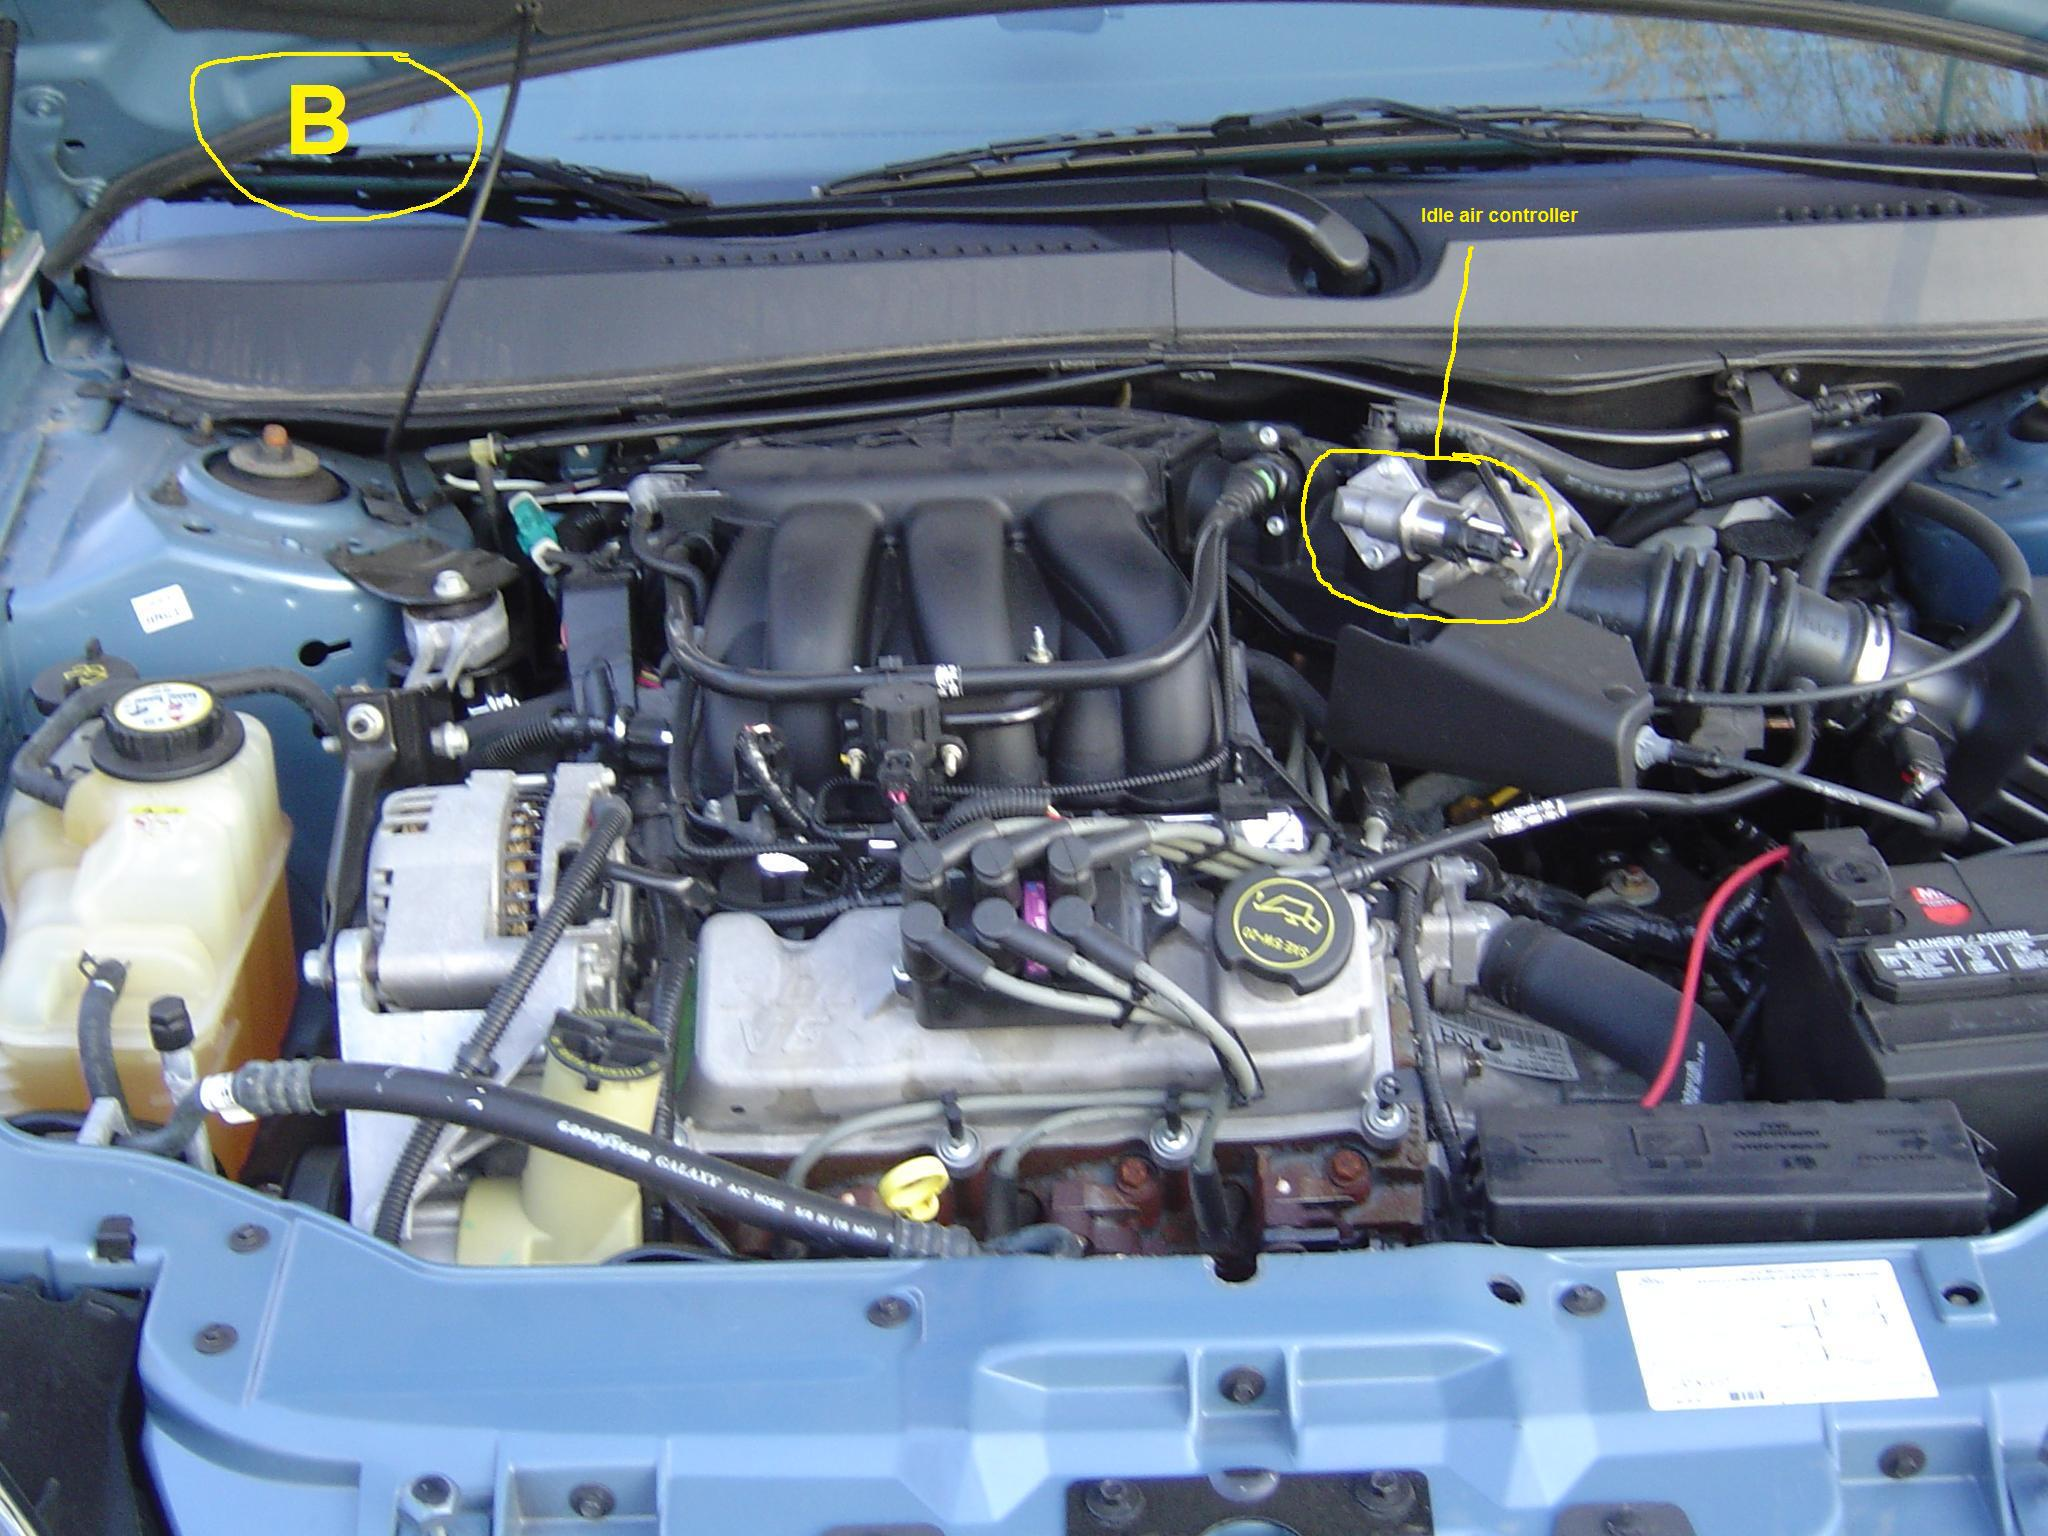 I have A 2003 ford Taurus 3.0 liter it idles up and down ...